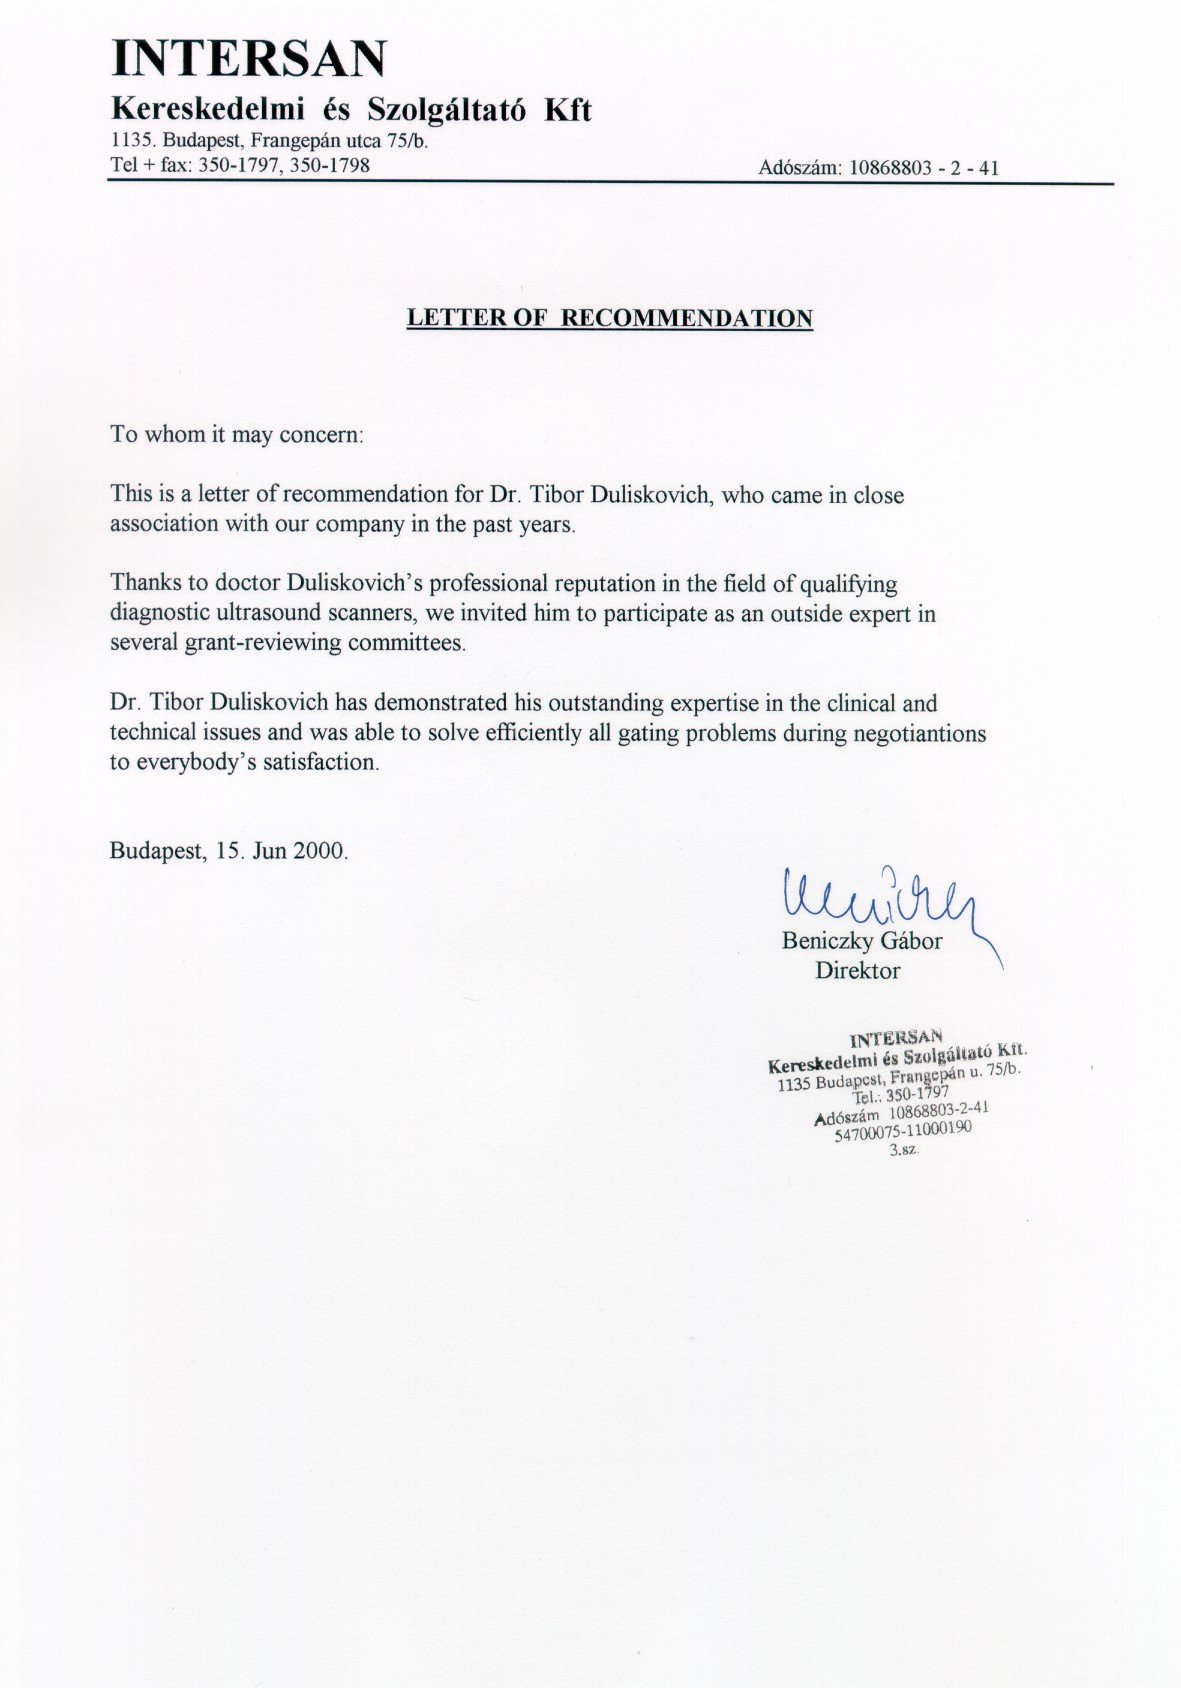 Medical assistant Letter Of Recommendation Beautiful Re Mendation Letter for Medical assistant